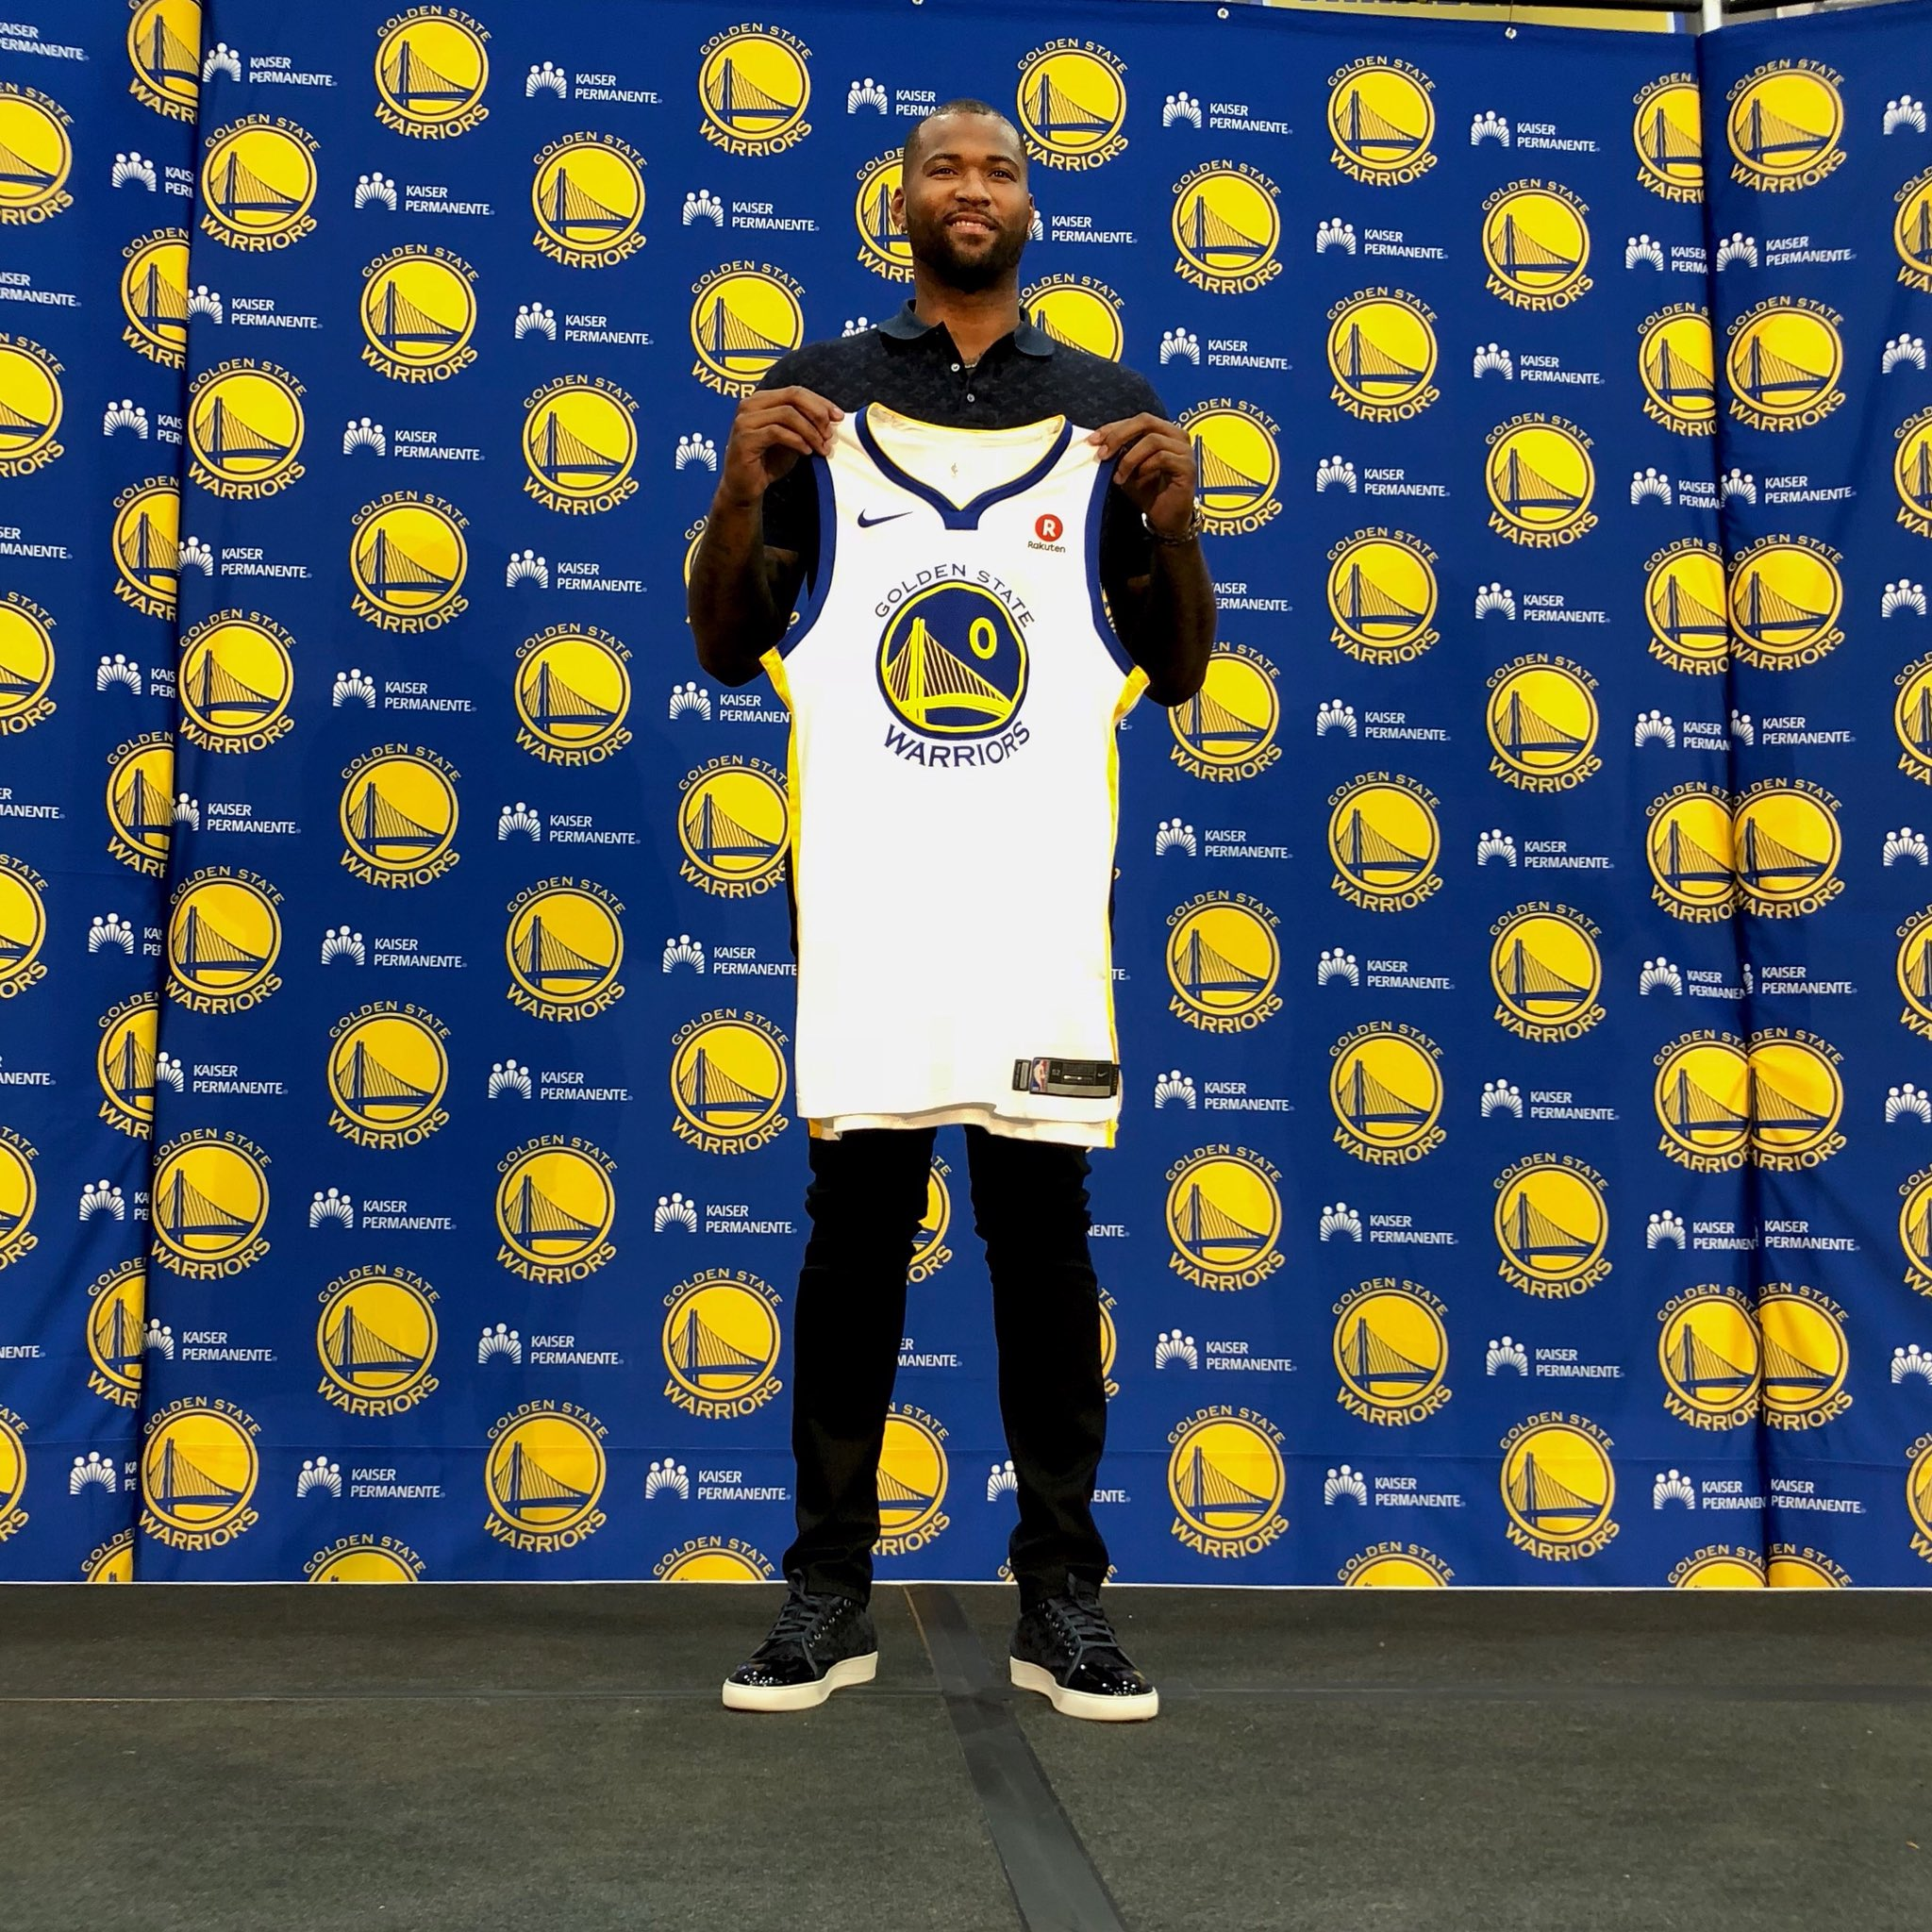 Join us in wishing @boogiecousins of the @warriors a HAPPY 28th BIRTHDAY! #NBABDAY https://t.co/z0Cp7GQMvh